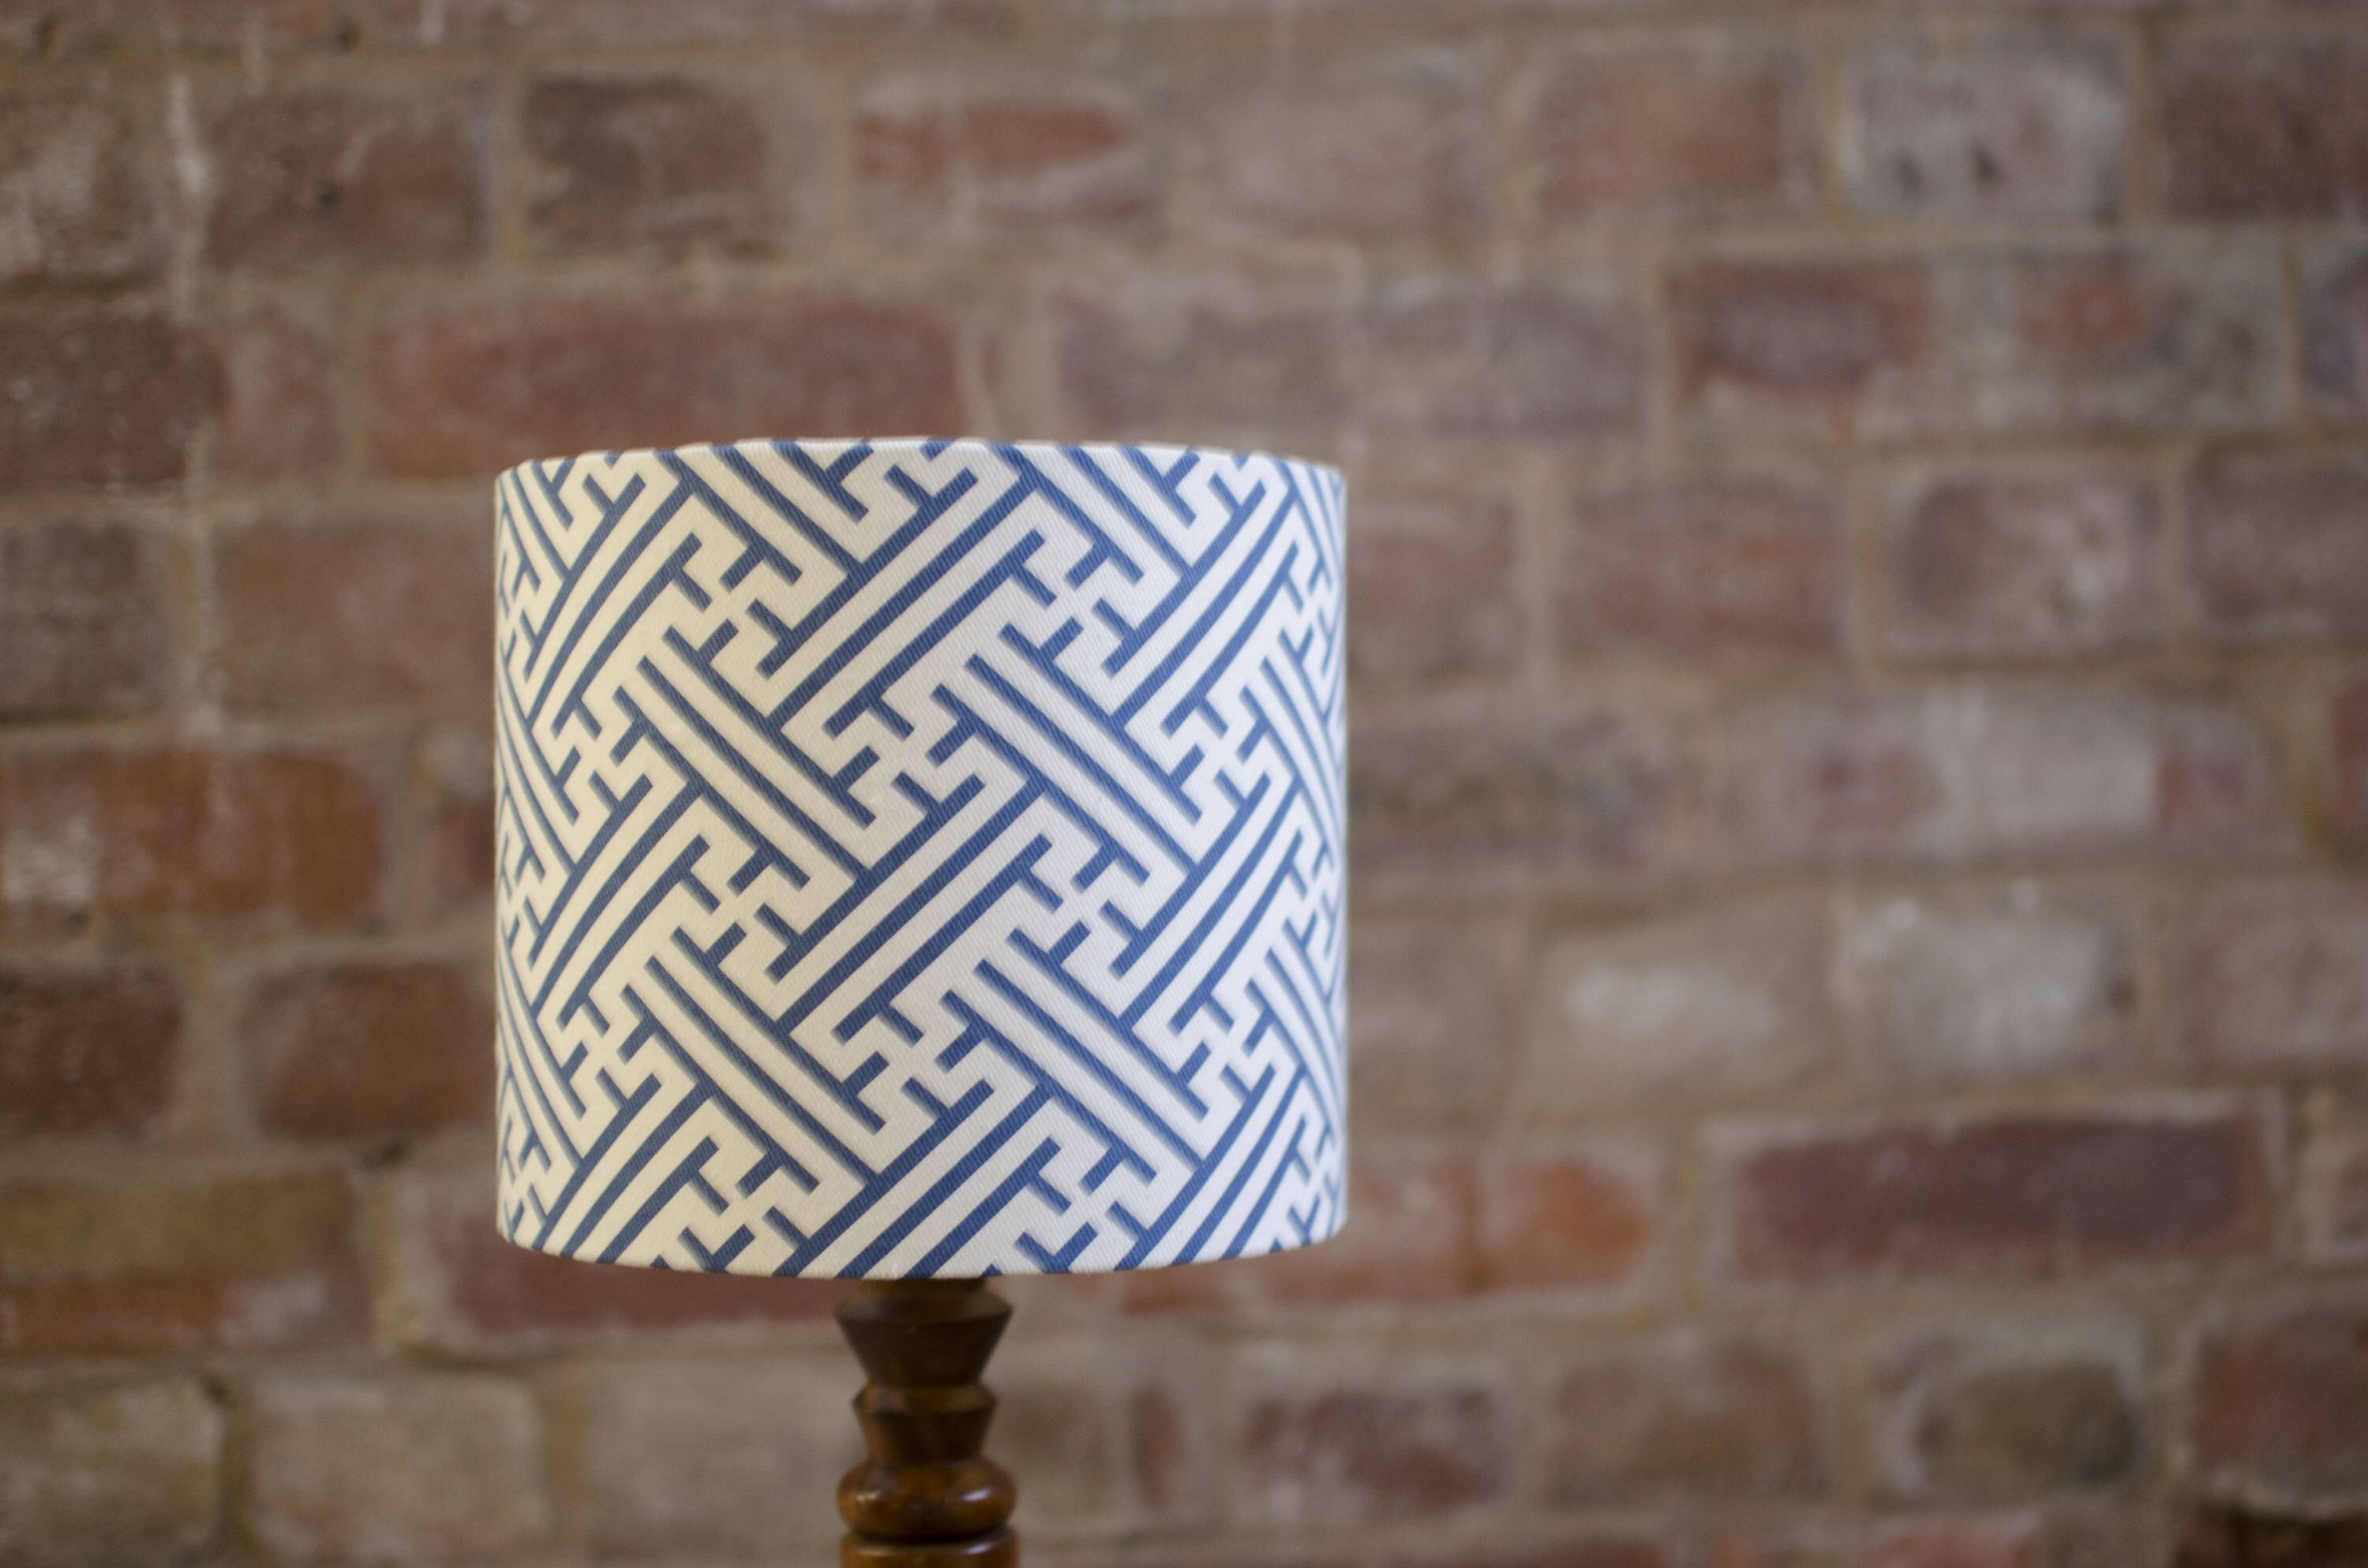 Superieur Blue Lampshade, Geometric Lamp Shade, Blue Home Decor, Geometric, Simple  Lampshade,